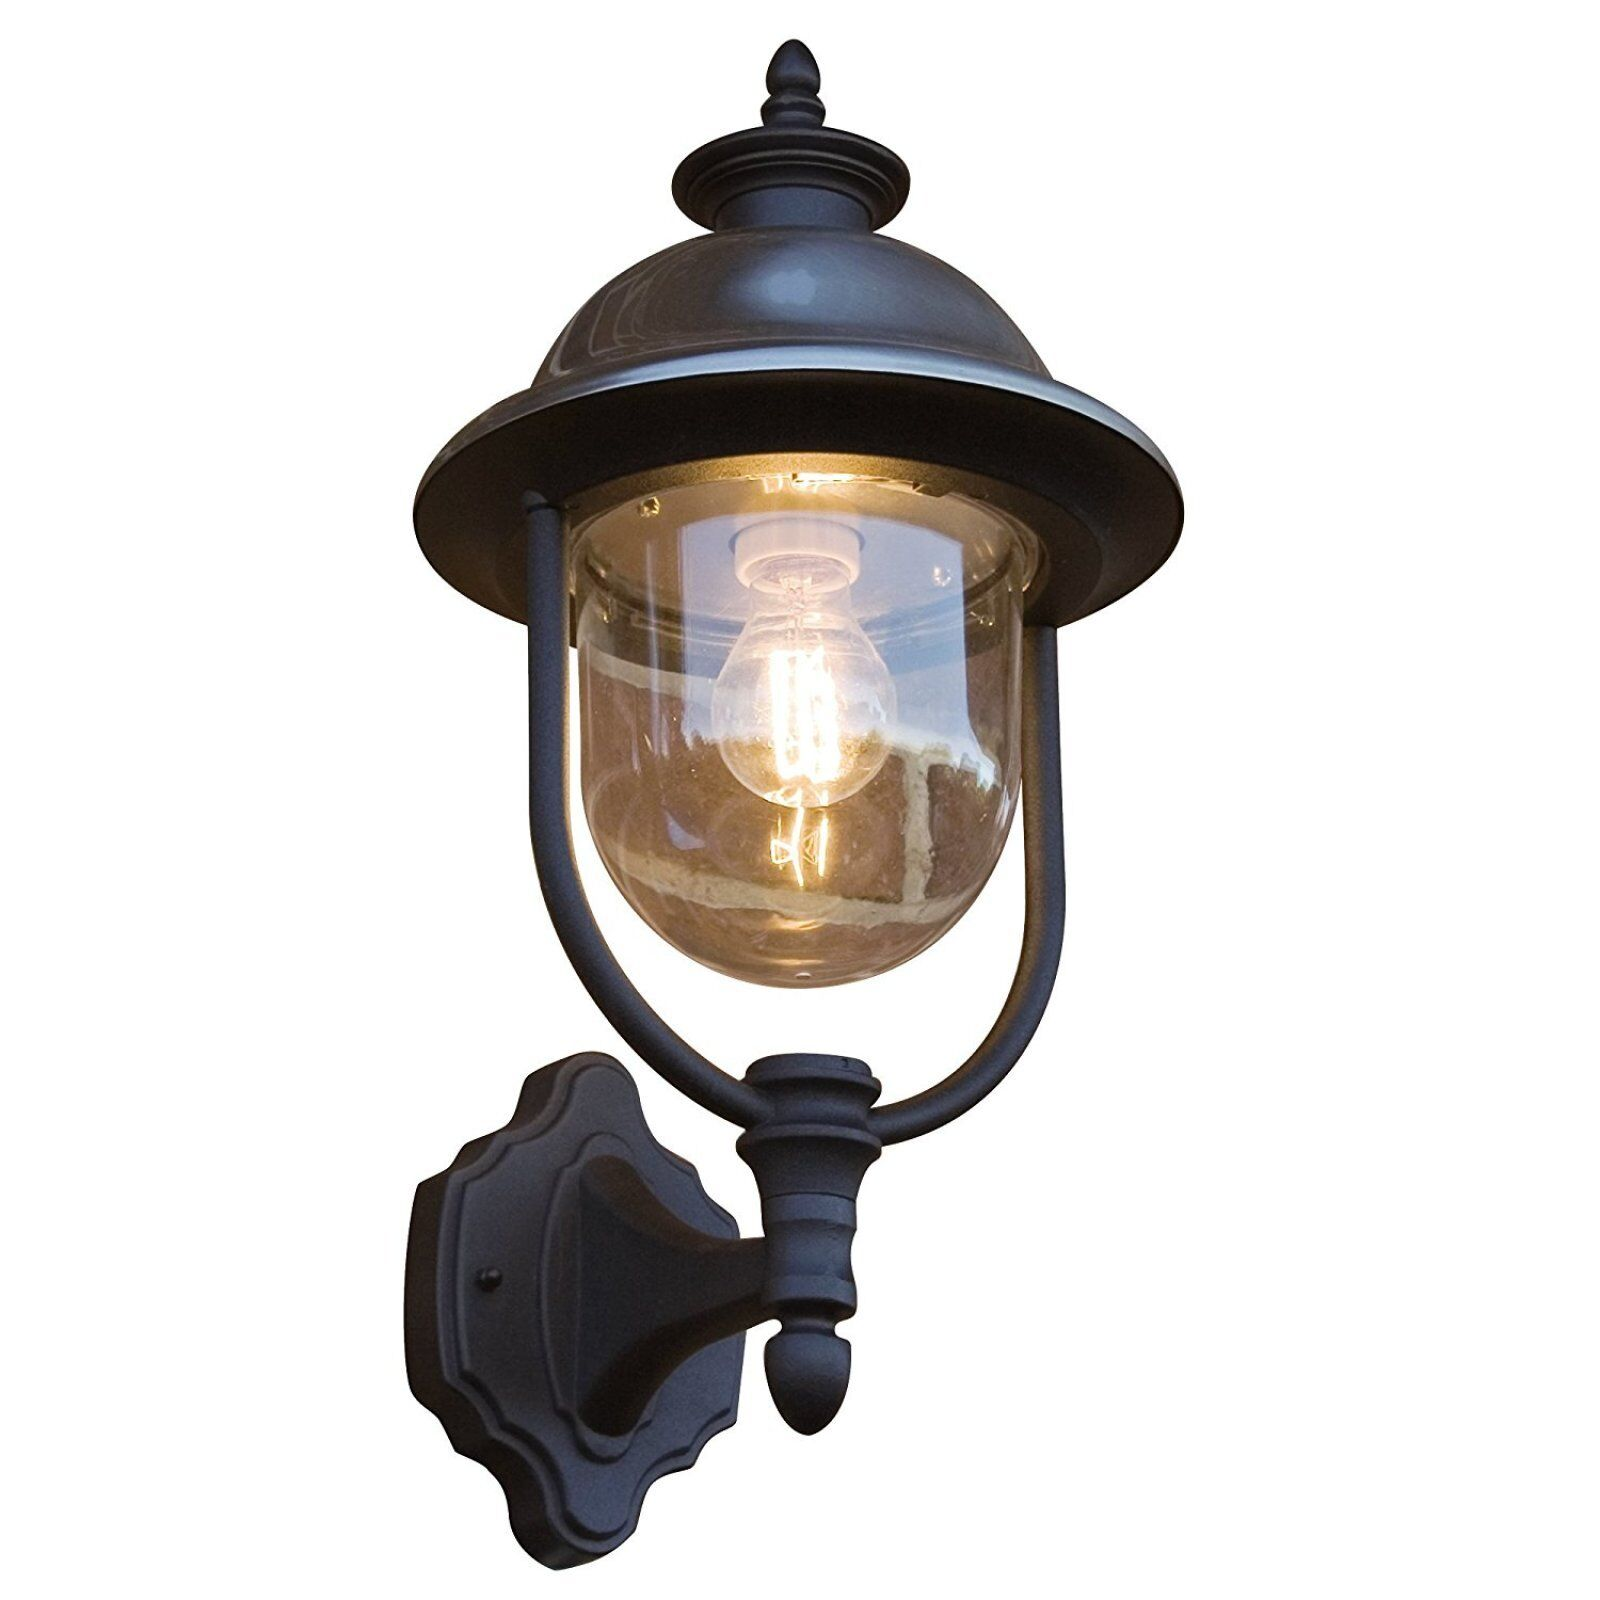 Traditional Retro Vintage Garden Garden Garden Porch Outdoor Outside Wall Light Lamp Fitting 2d3c4b